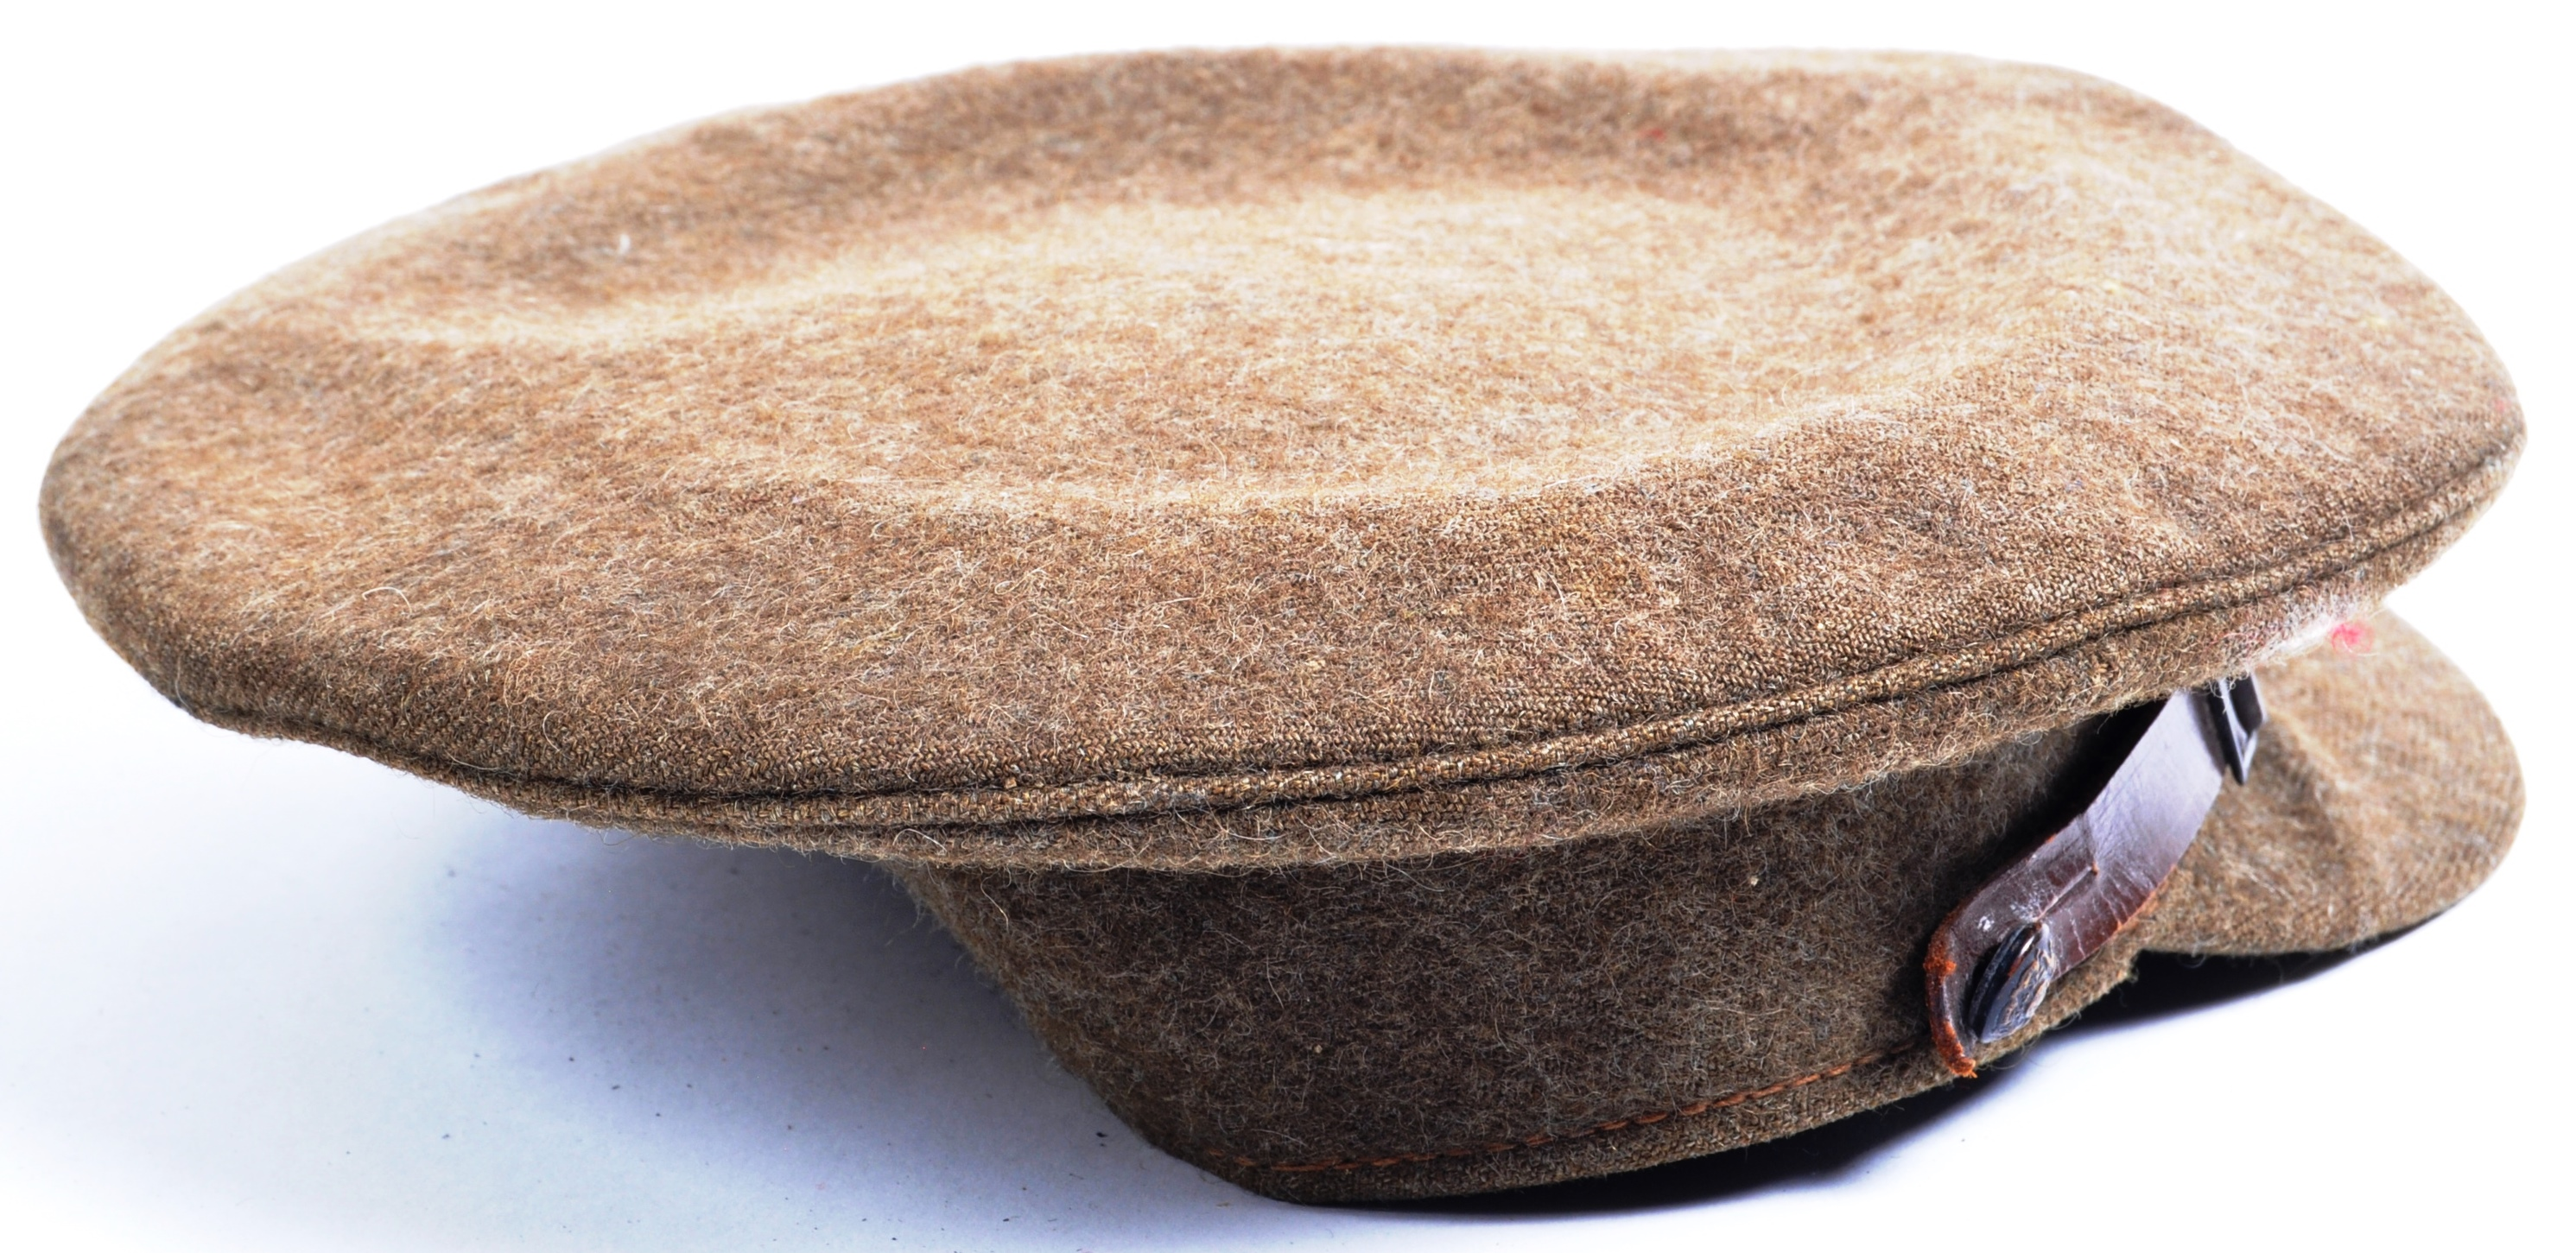 WWI FIRST WORLD WAR PERIOD KING'S ROYAL HUSSARS CAP - Image 3 of 6